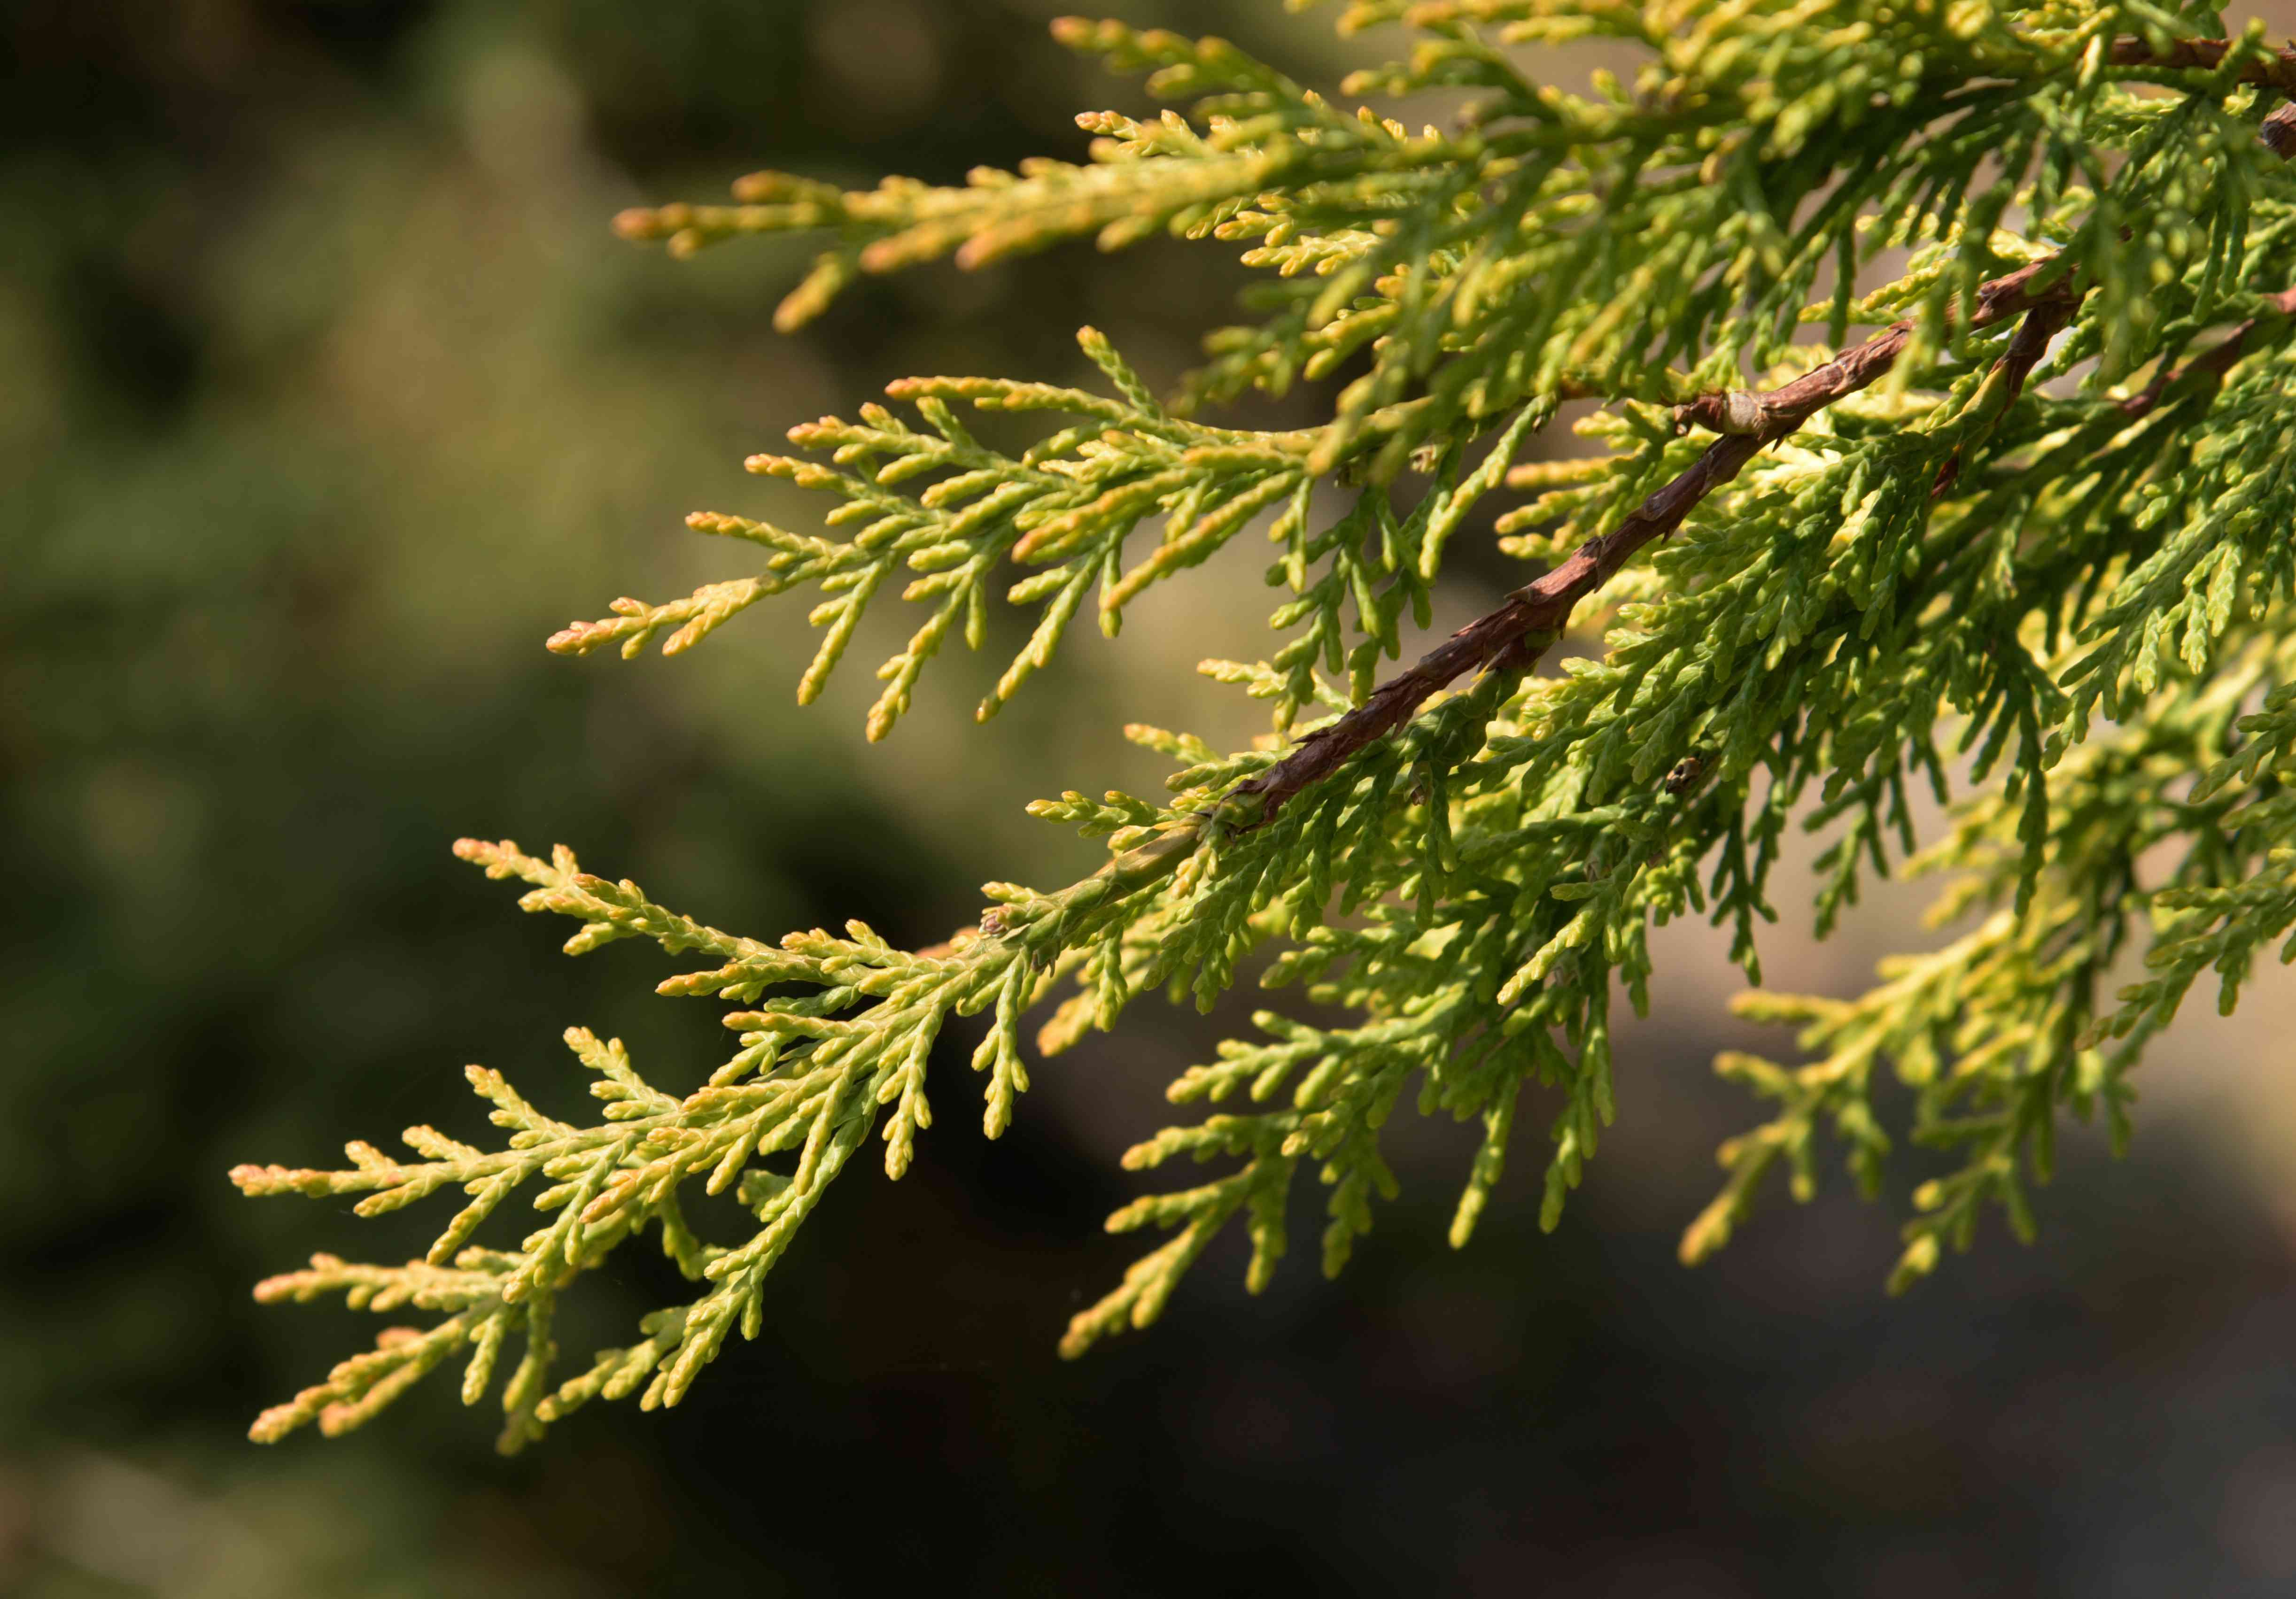 Leyland cypress tree branch with flattened sprays of leaves closeup